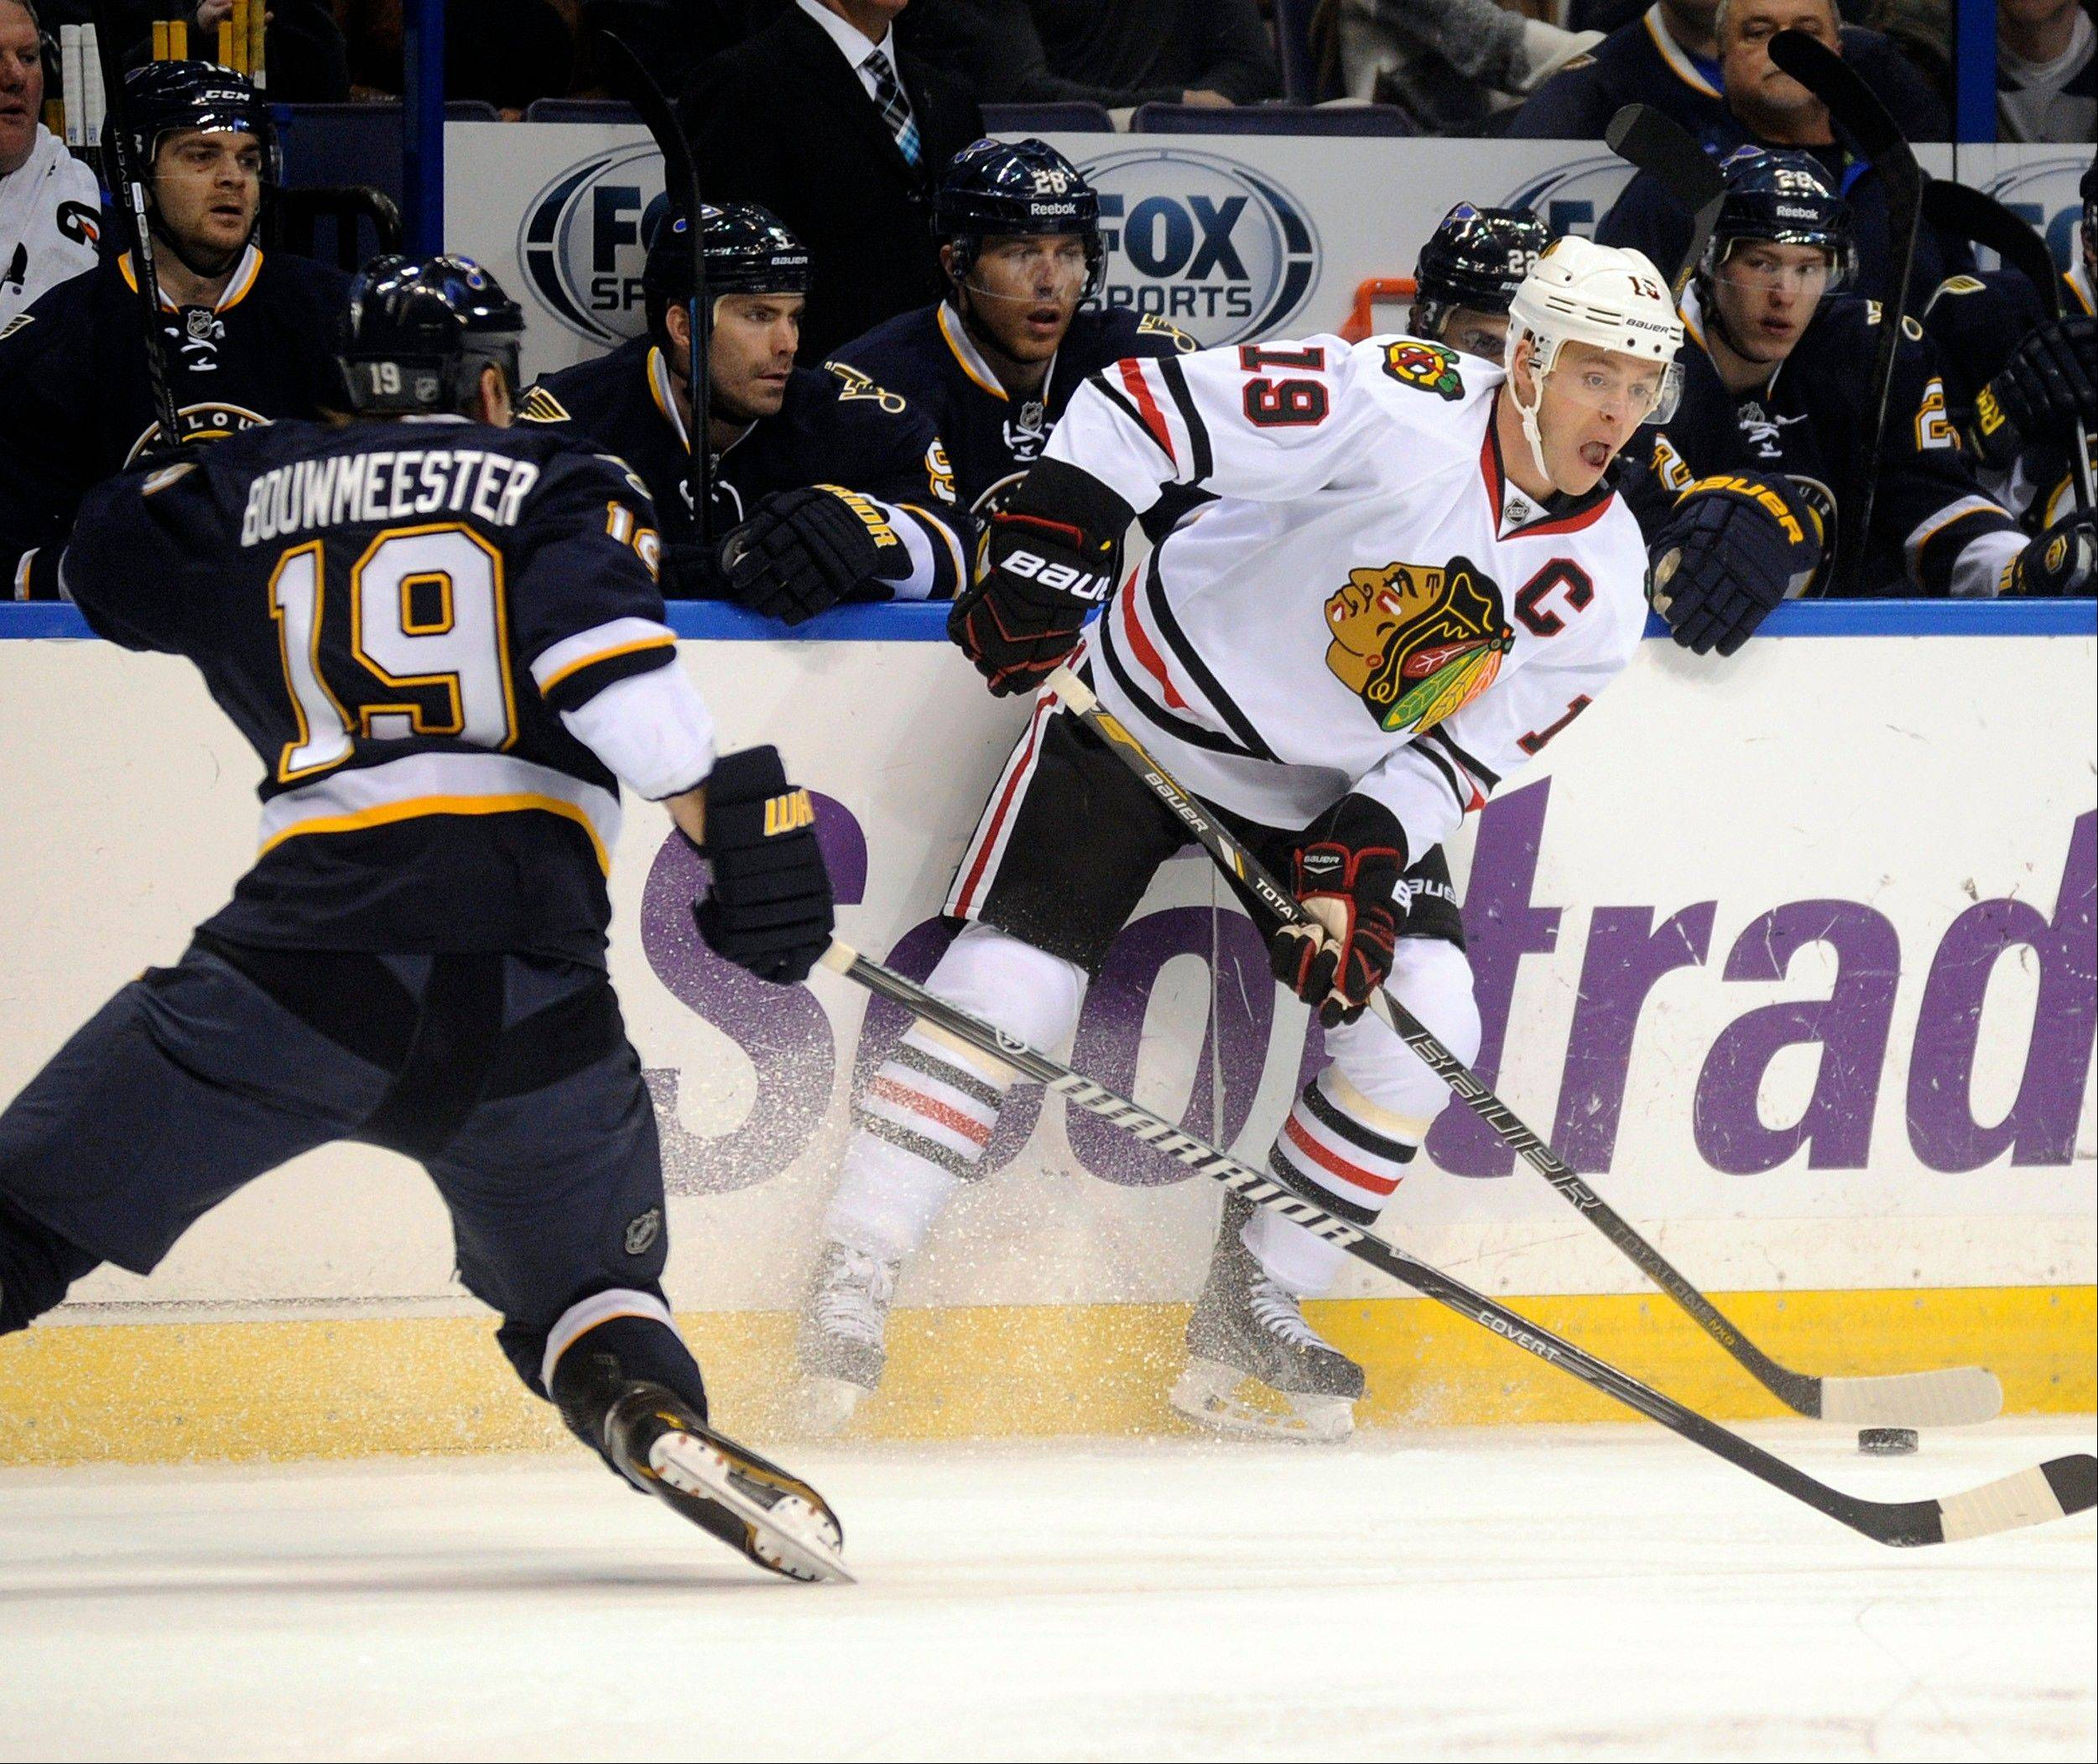 The Chicago Blackhawks� Jonathan Toews, right, looks to pass around the St. Louis Blues� Jay Bouwmeester during the first period Saturday in St. Louis.